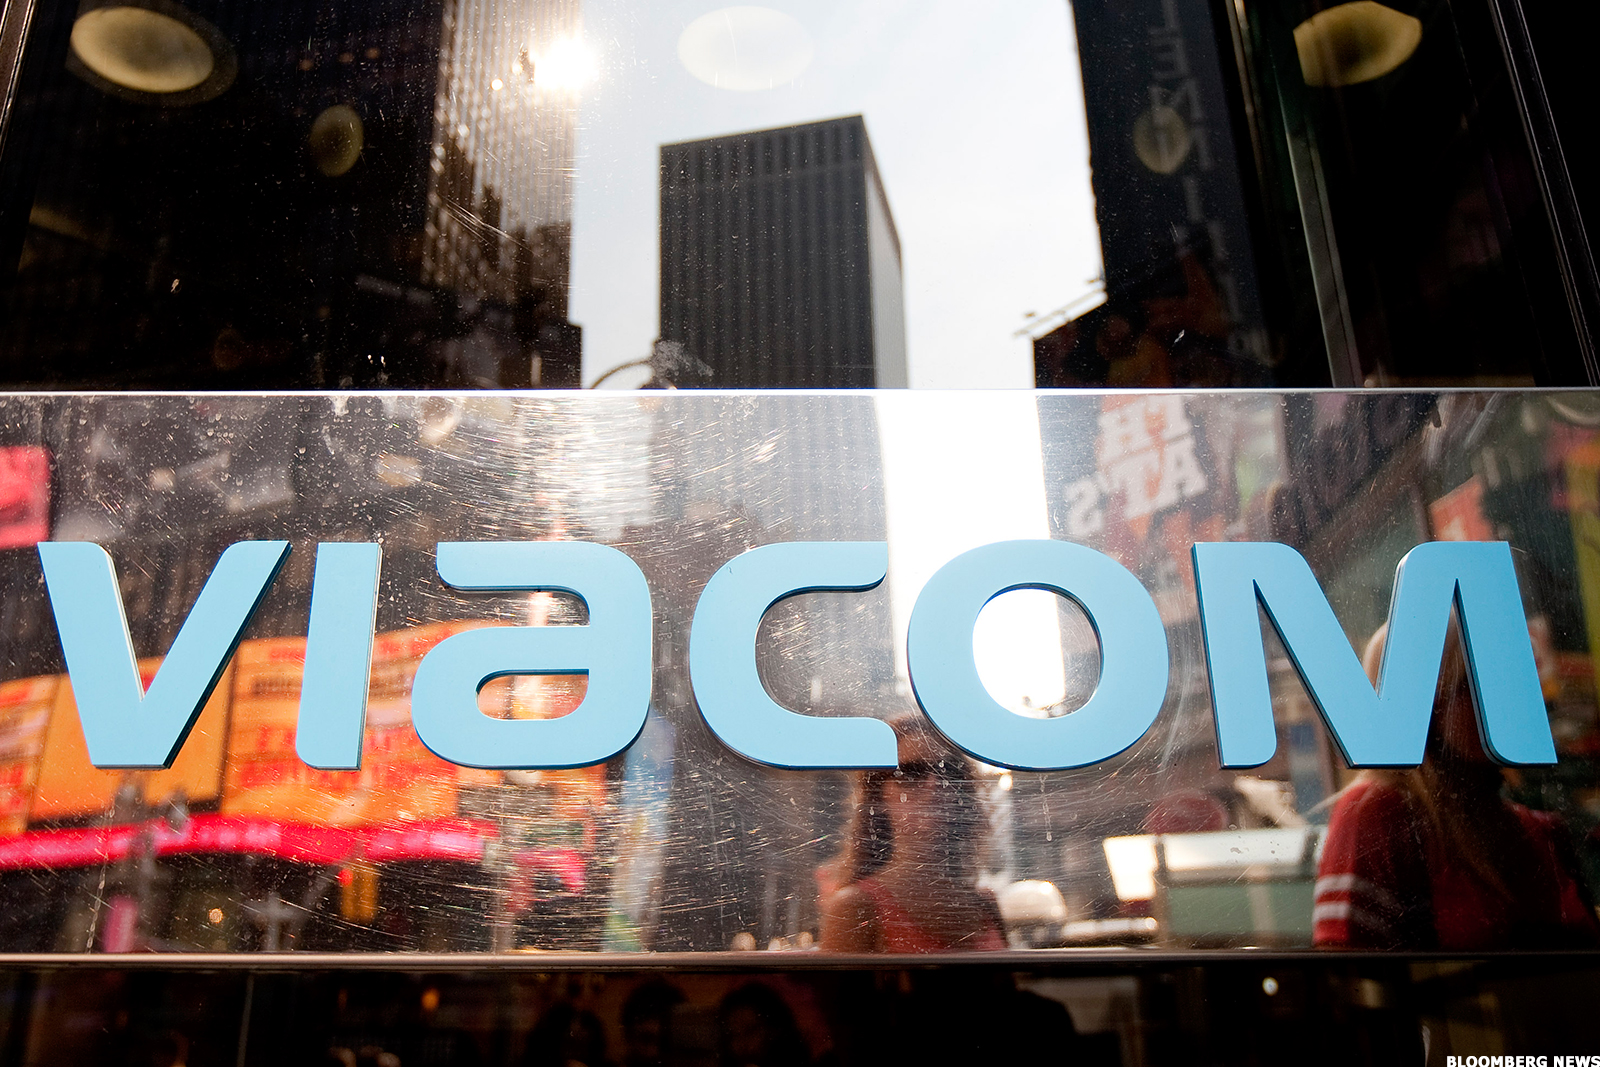 stock market and paramount Answer paramount pictures is a subsidiary of viacom inc the ticker symbol for viacom is via and it is traded on the new york stock exchange.